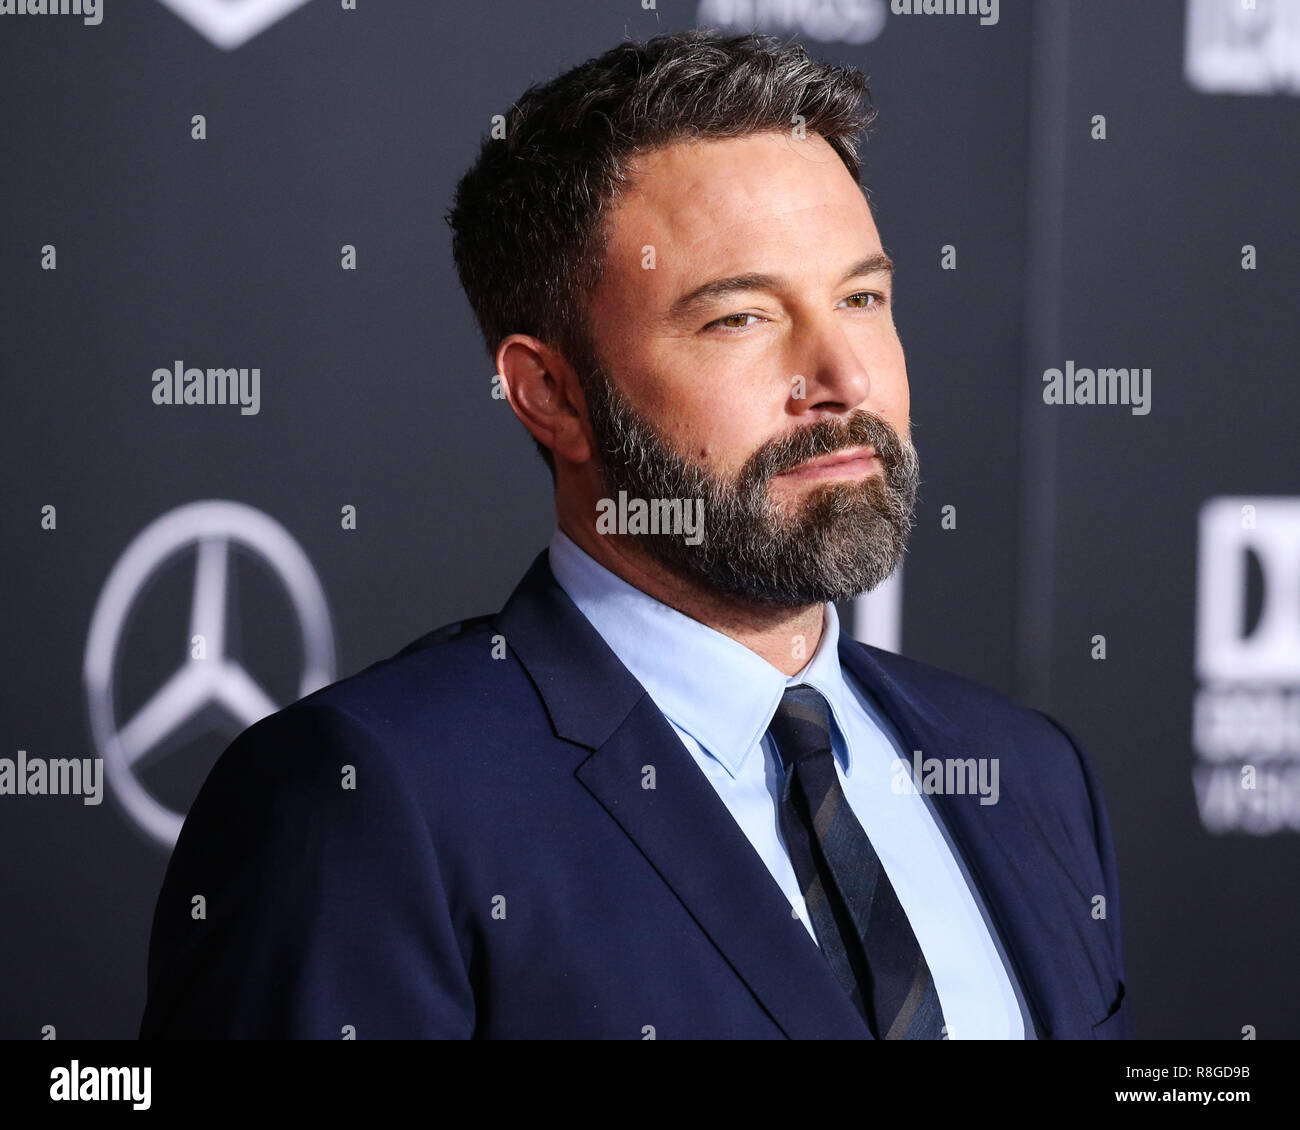 HOLLYWOOD, LOS ANGELES, CA, USA - NOVEMBER 13: Ben Affleck arrives at the World Premiere Of Warner Bros. Pictures' 'Justice League' held at the Dolby Theatre on November 13, 2017 in Hollywood, Los Angeles, California, United States. (Photo by Xavier Collin/Image Press Agency) - Stock Image